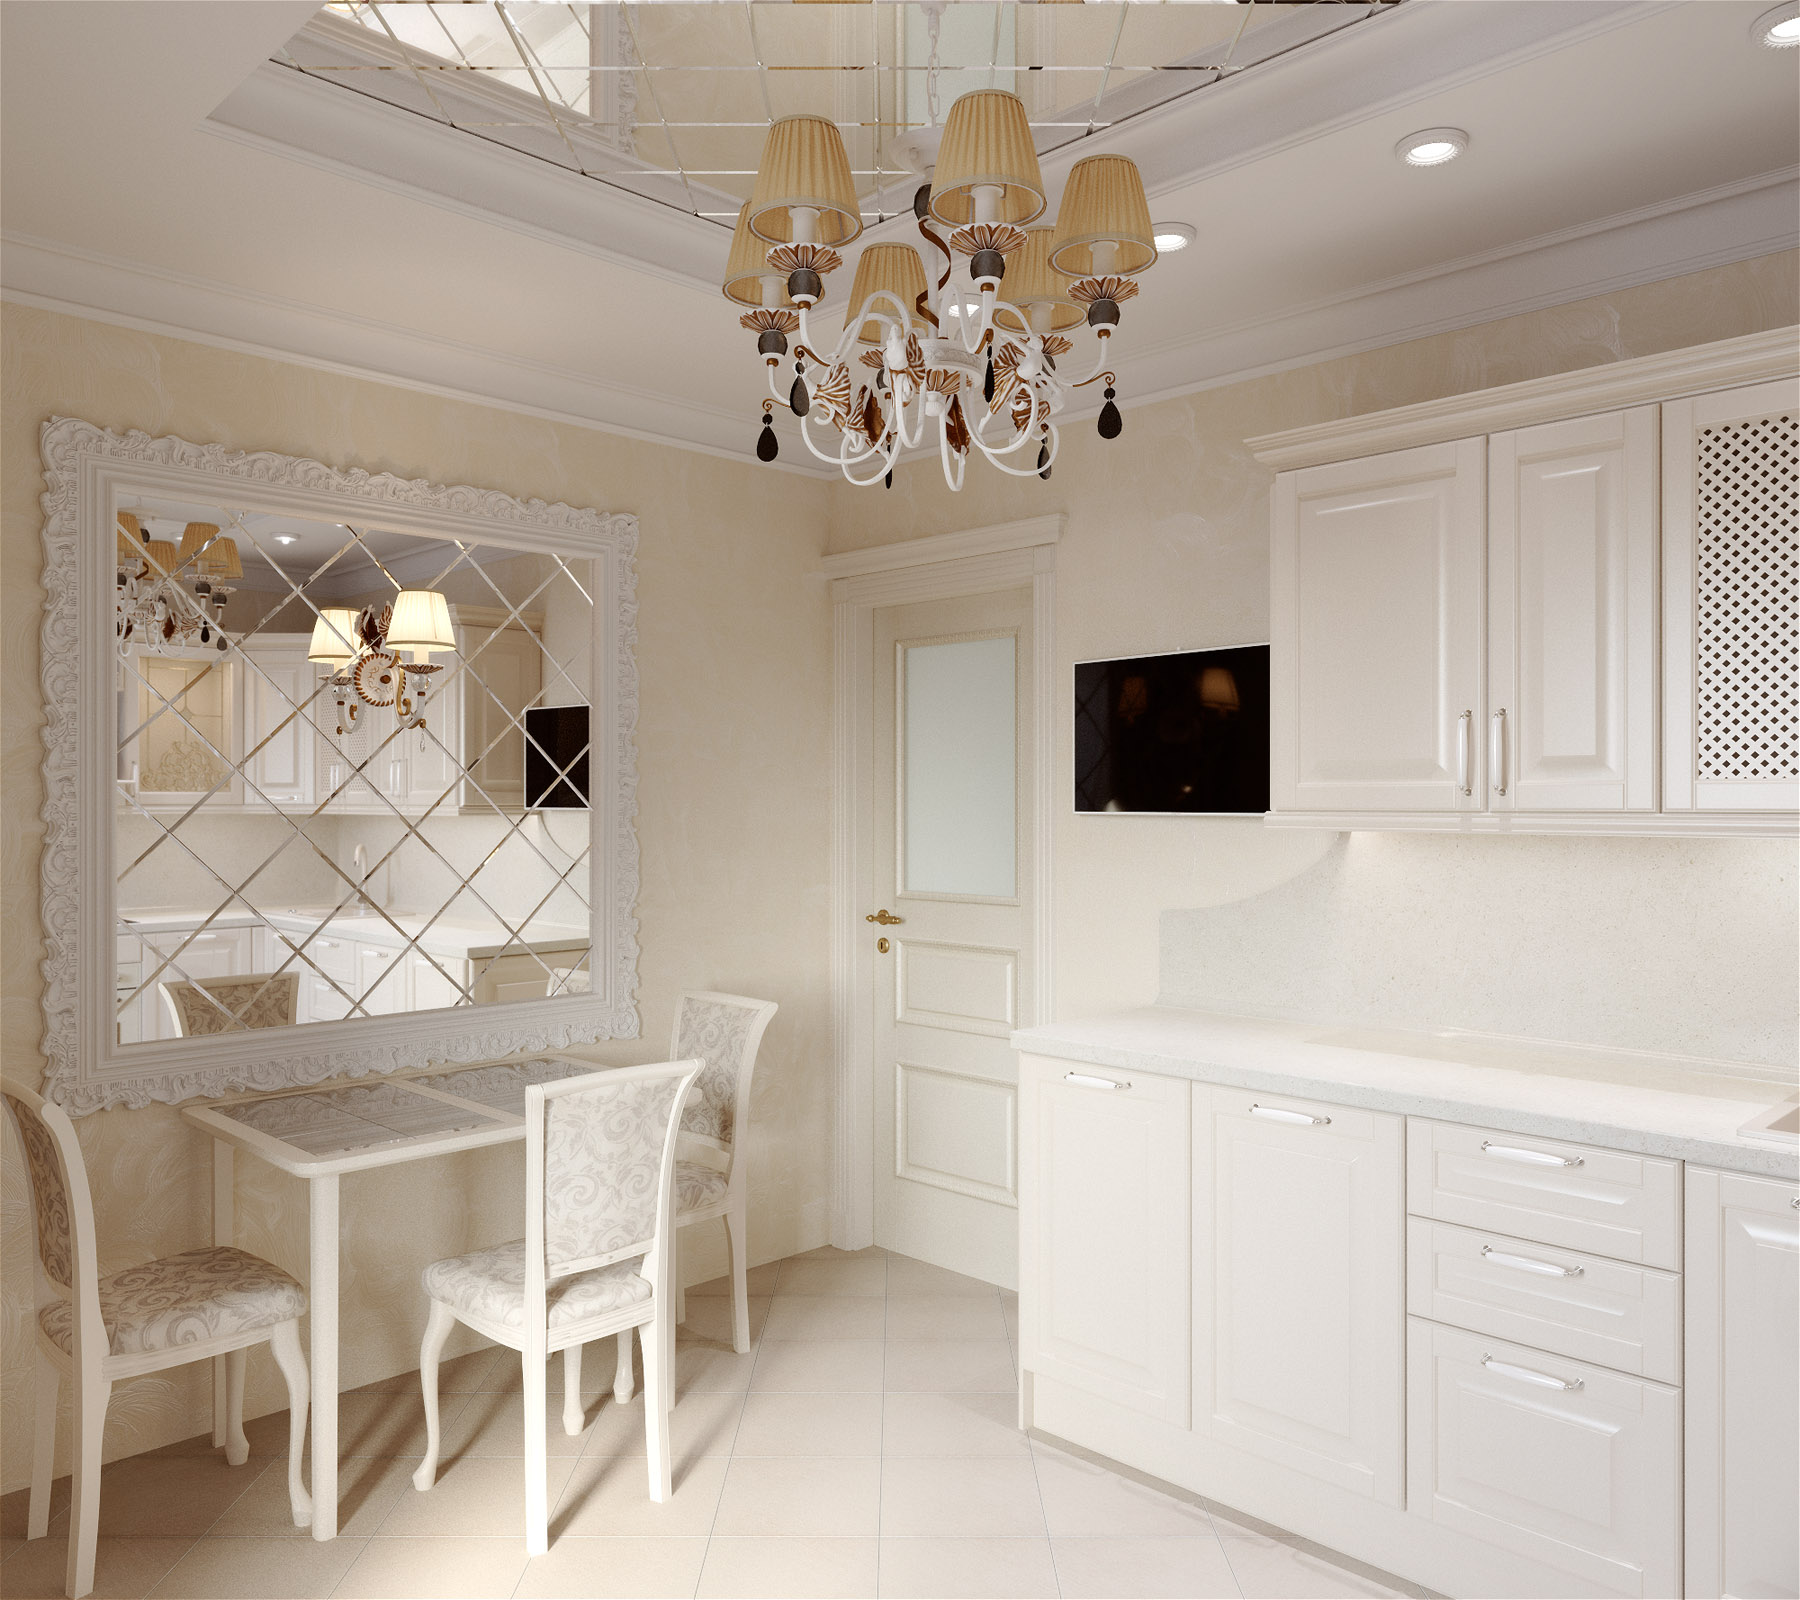 render_kitch_002_00000